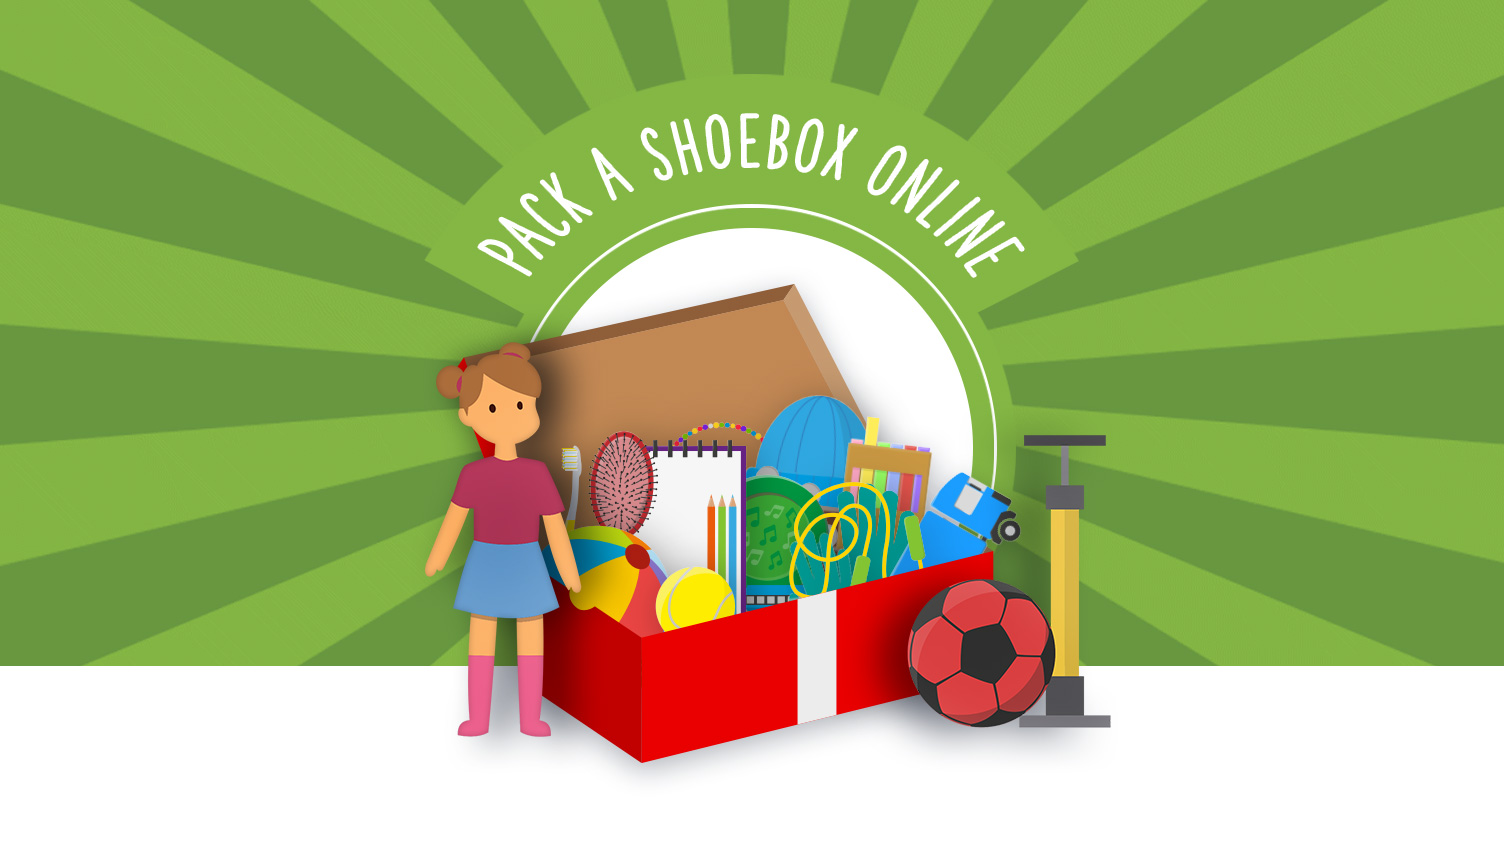 pack a shoebox online